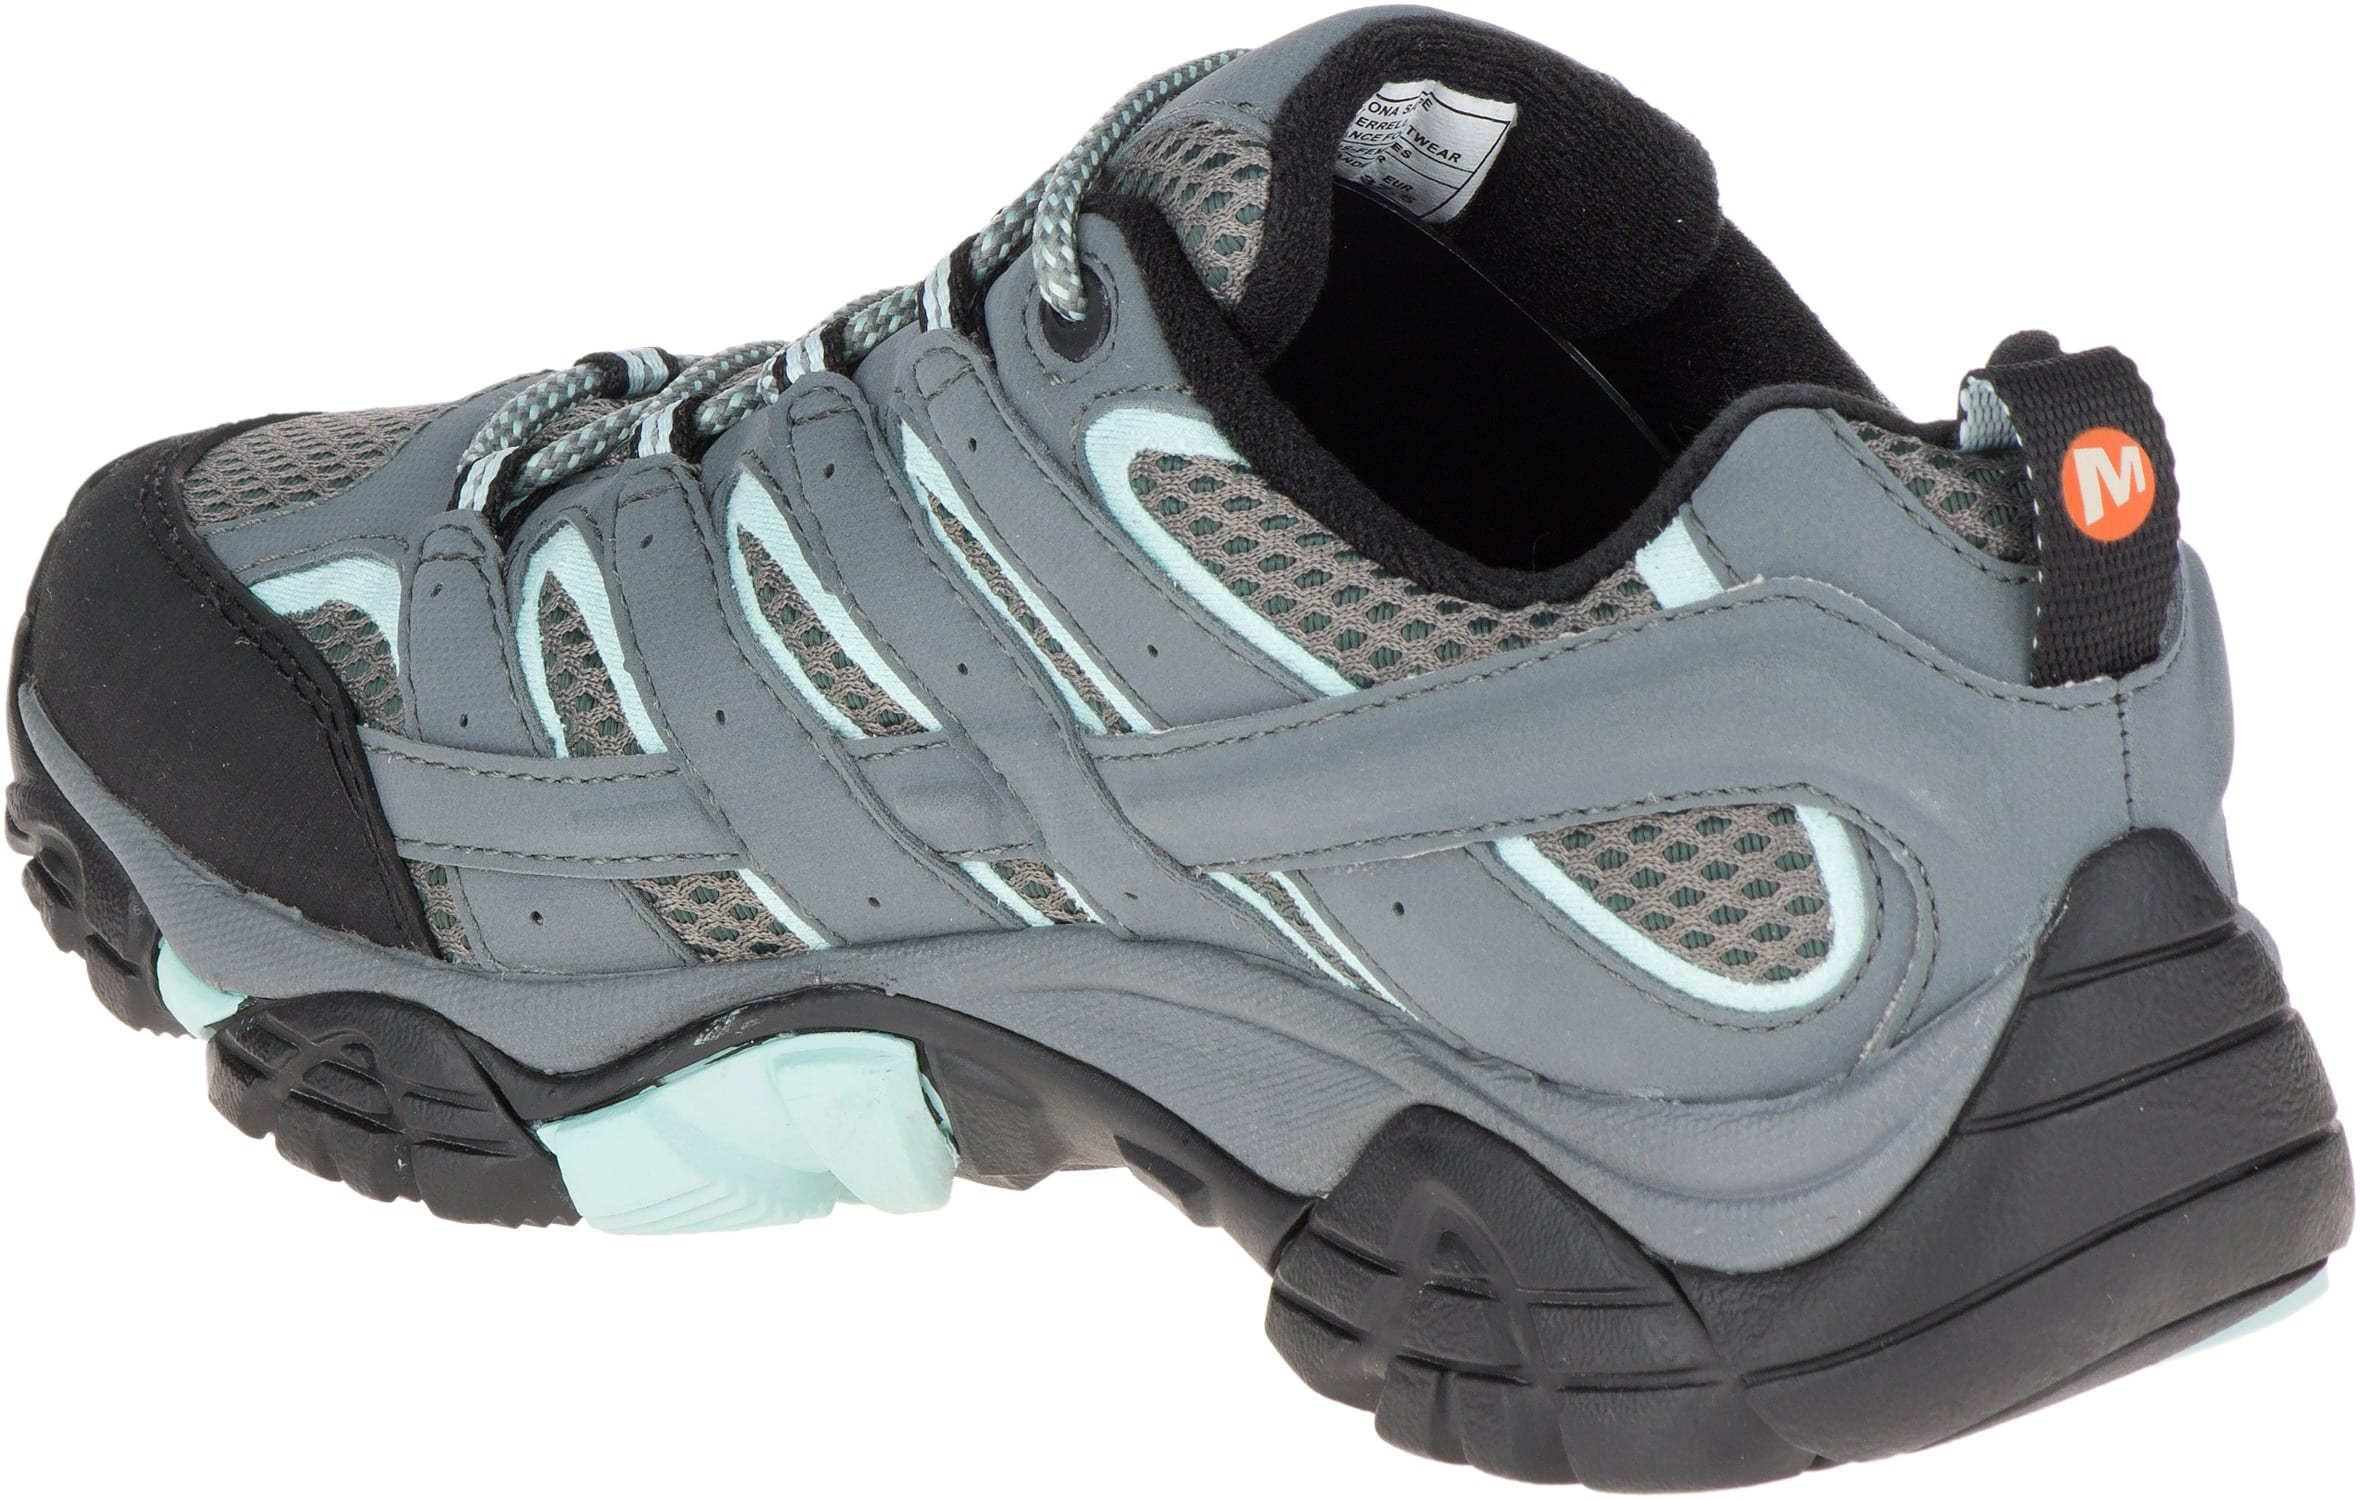 merrell moab 2 gtx review